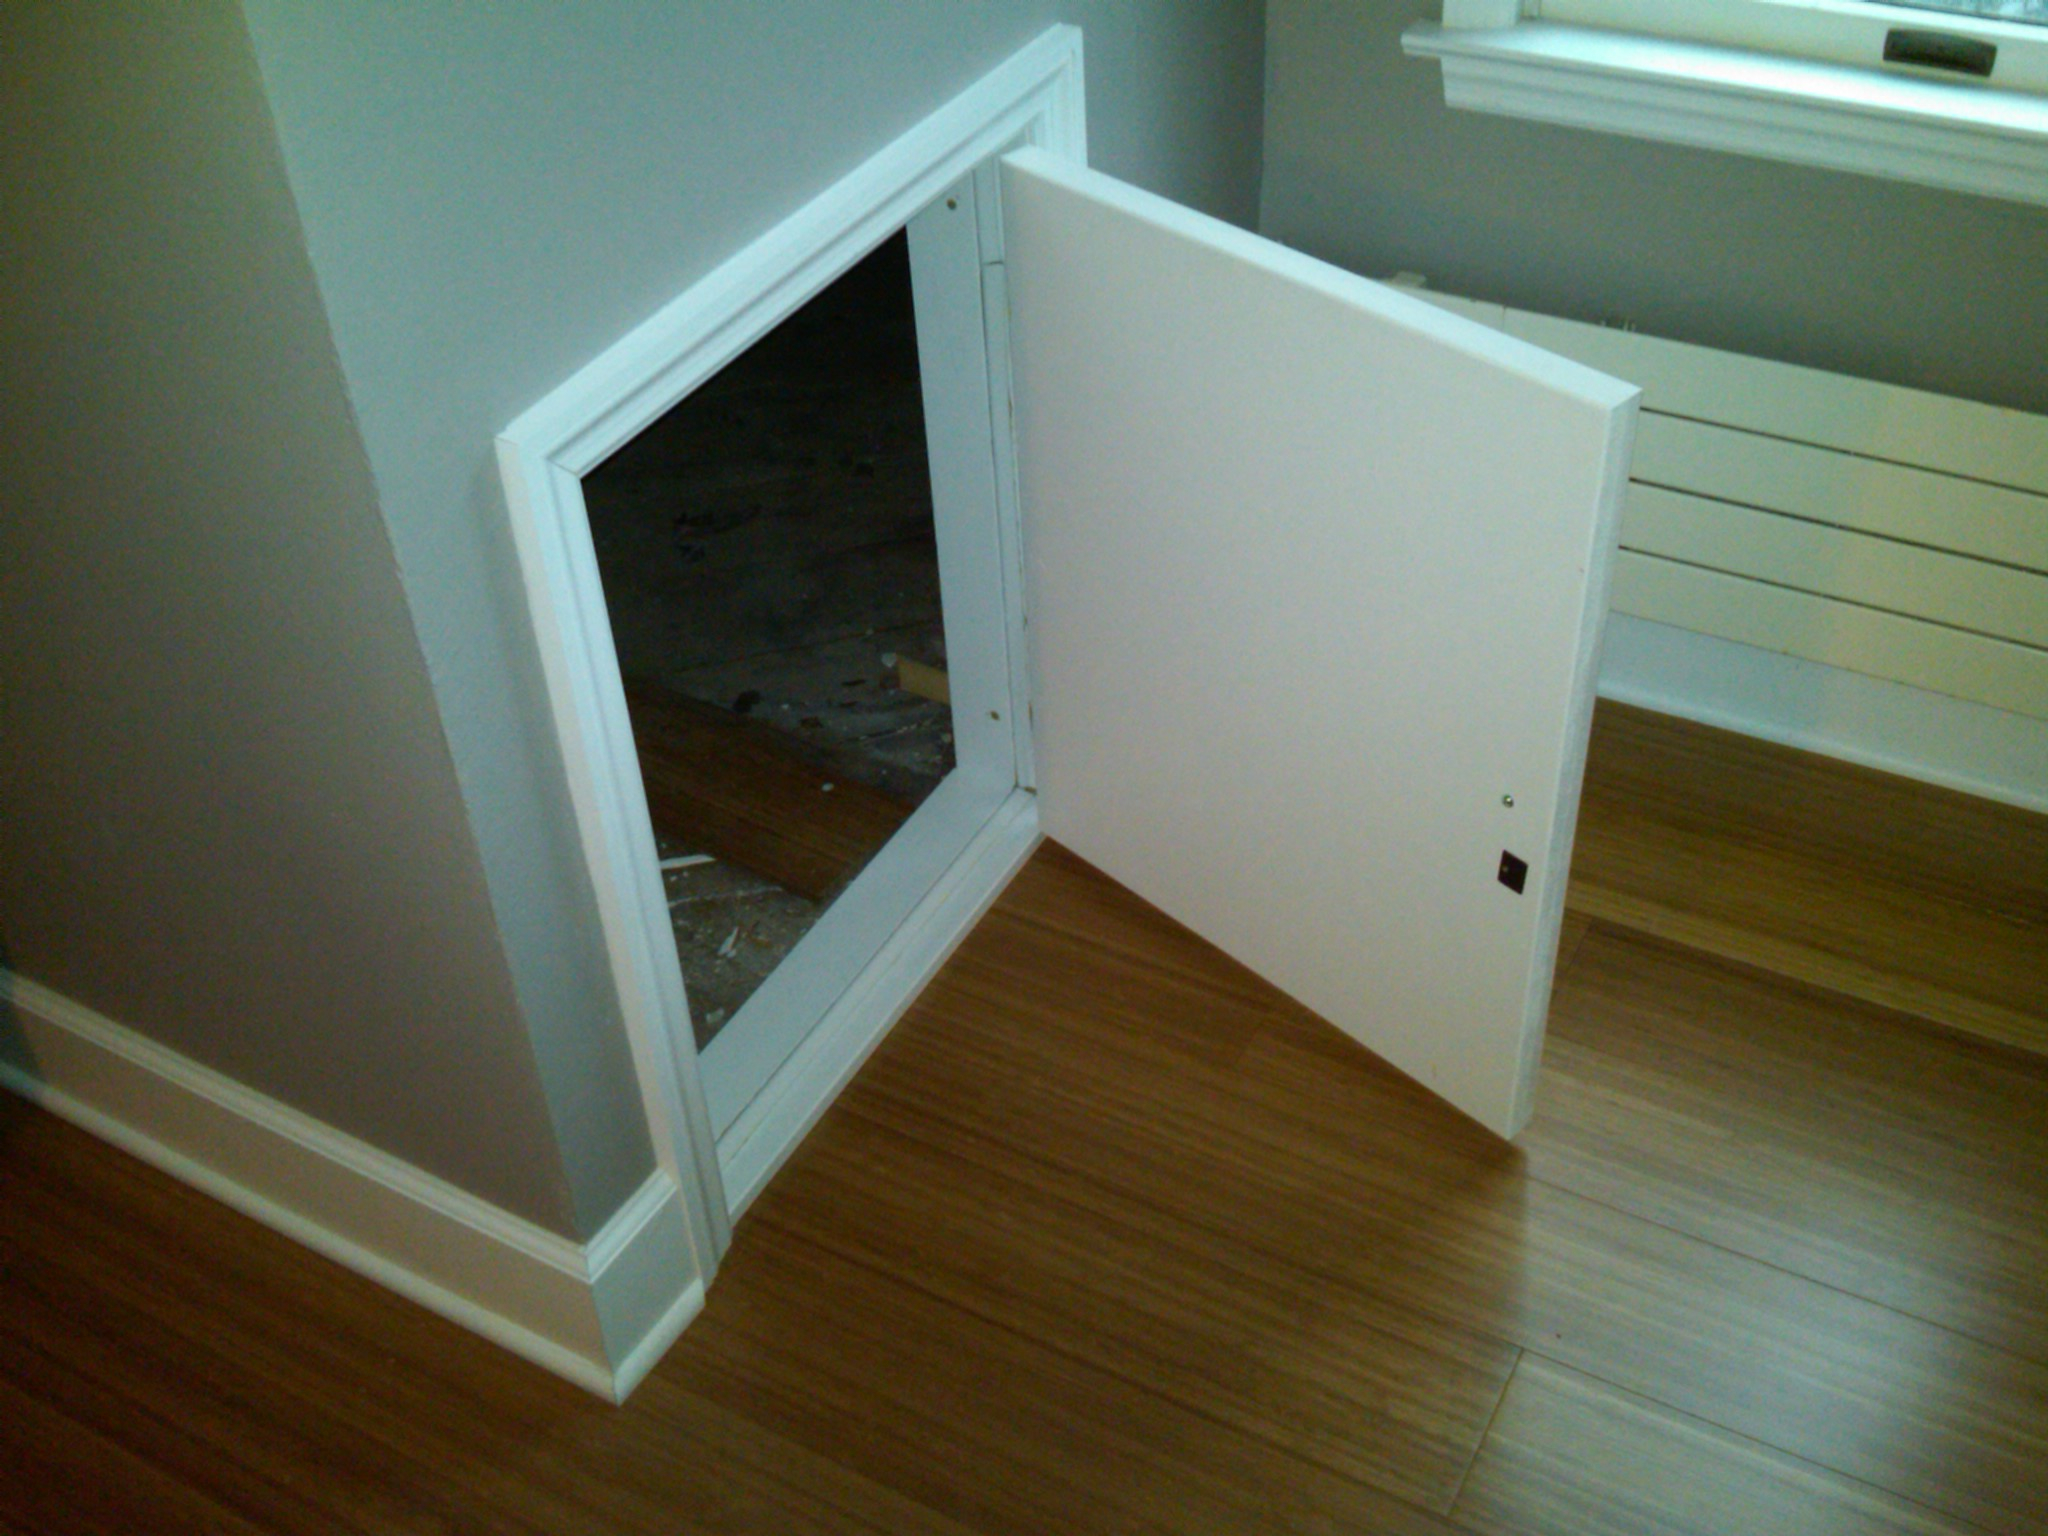 Utility Access Doors : Adding attic access door ideas